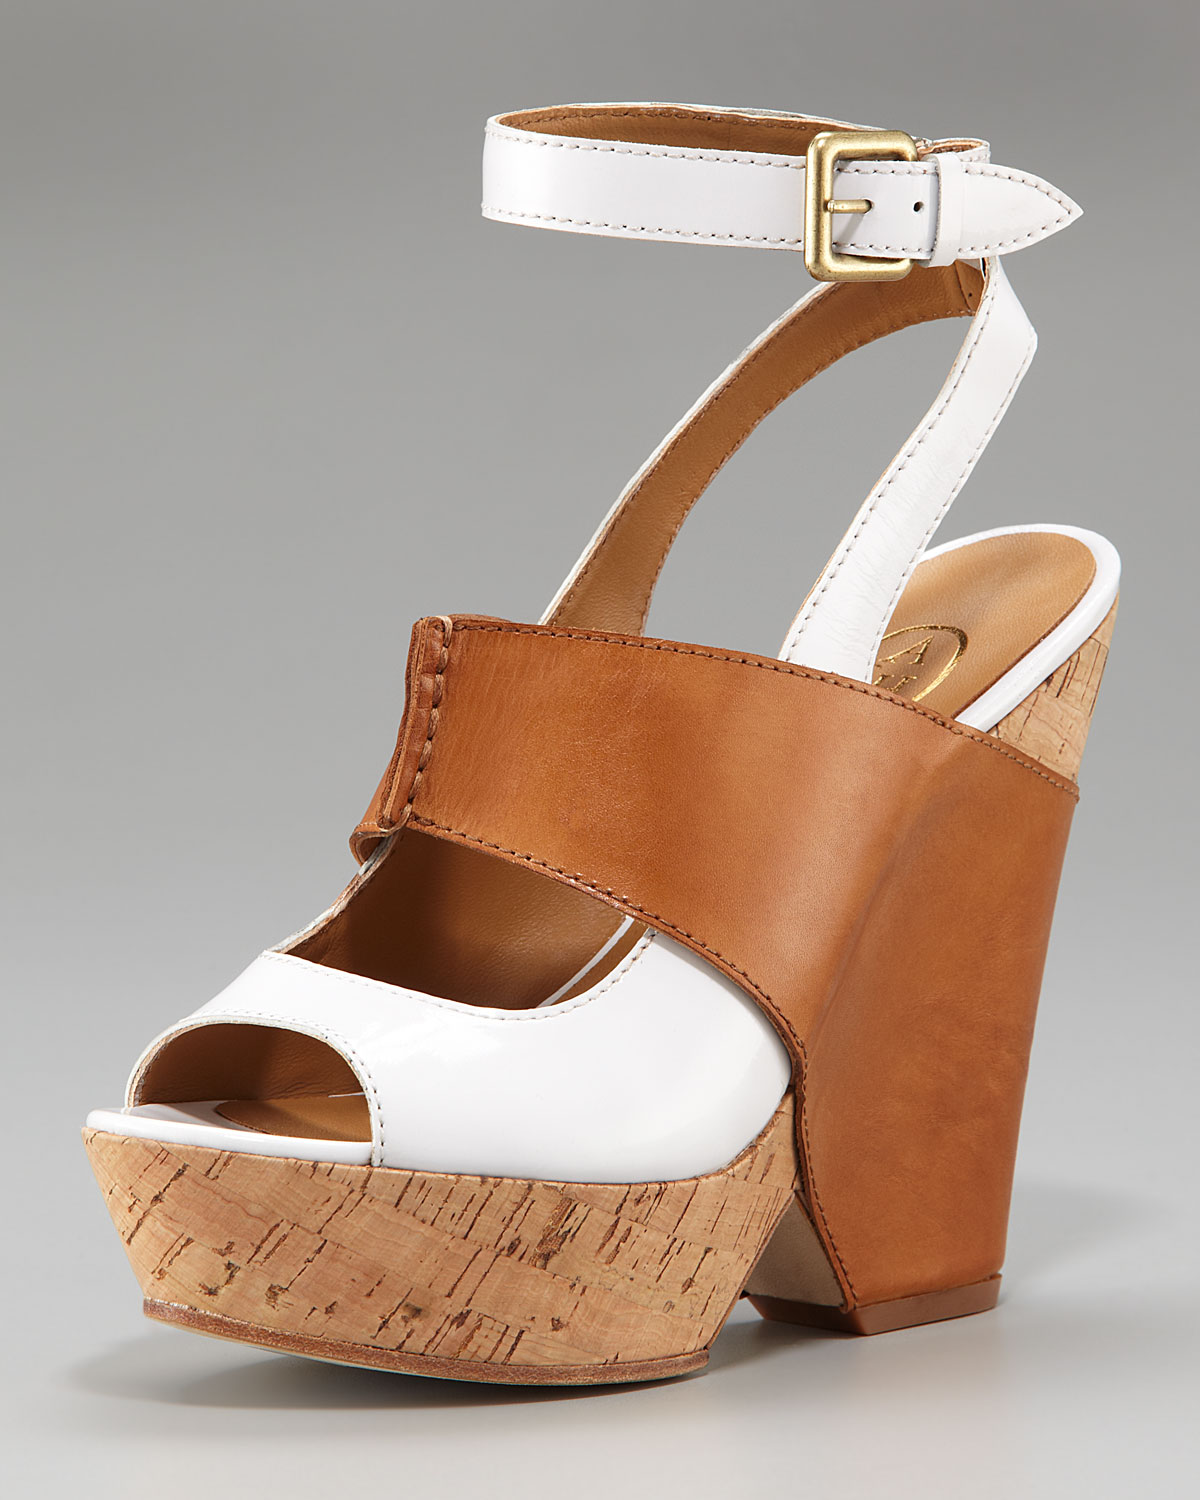 Ash Colorblock Cork Wedge Sandal In Brown White Natural